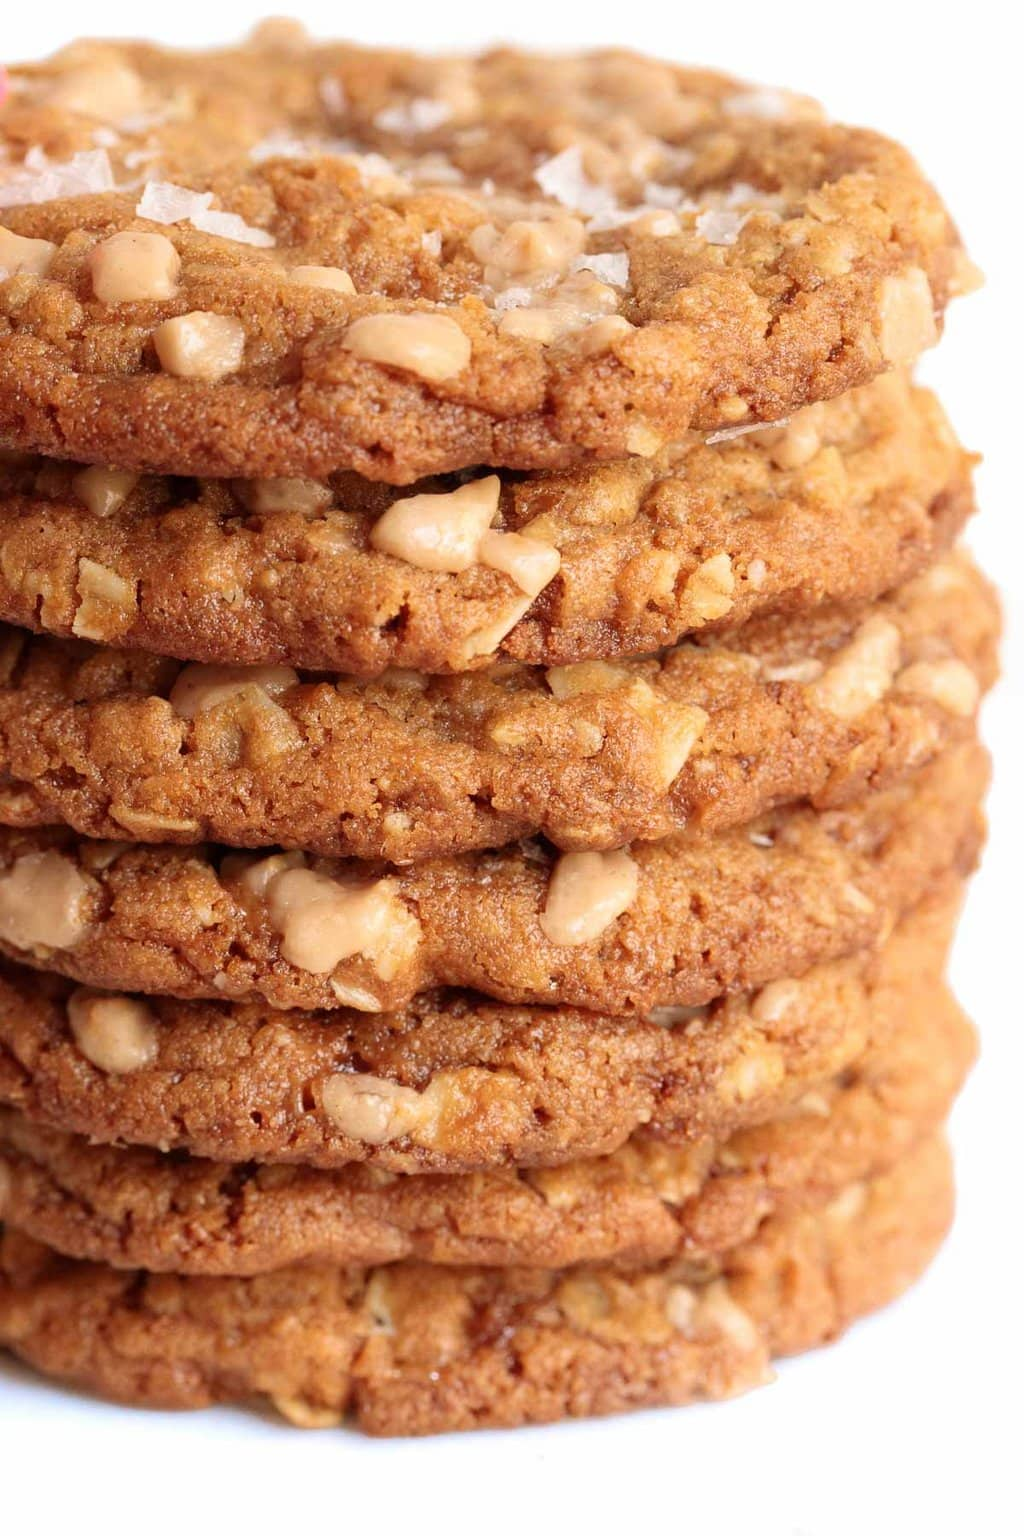 Close up vertical photo of a tall stack of Oatmeal Toffee Peanut Butter Cookies.